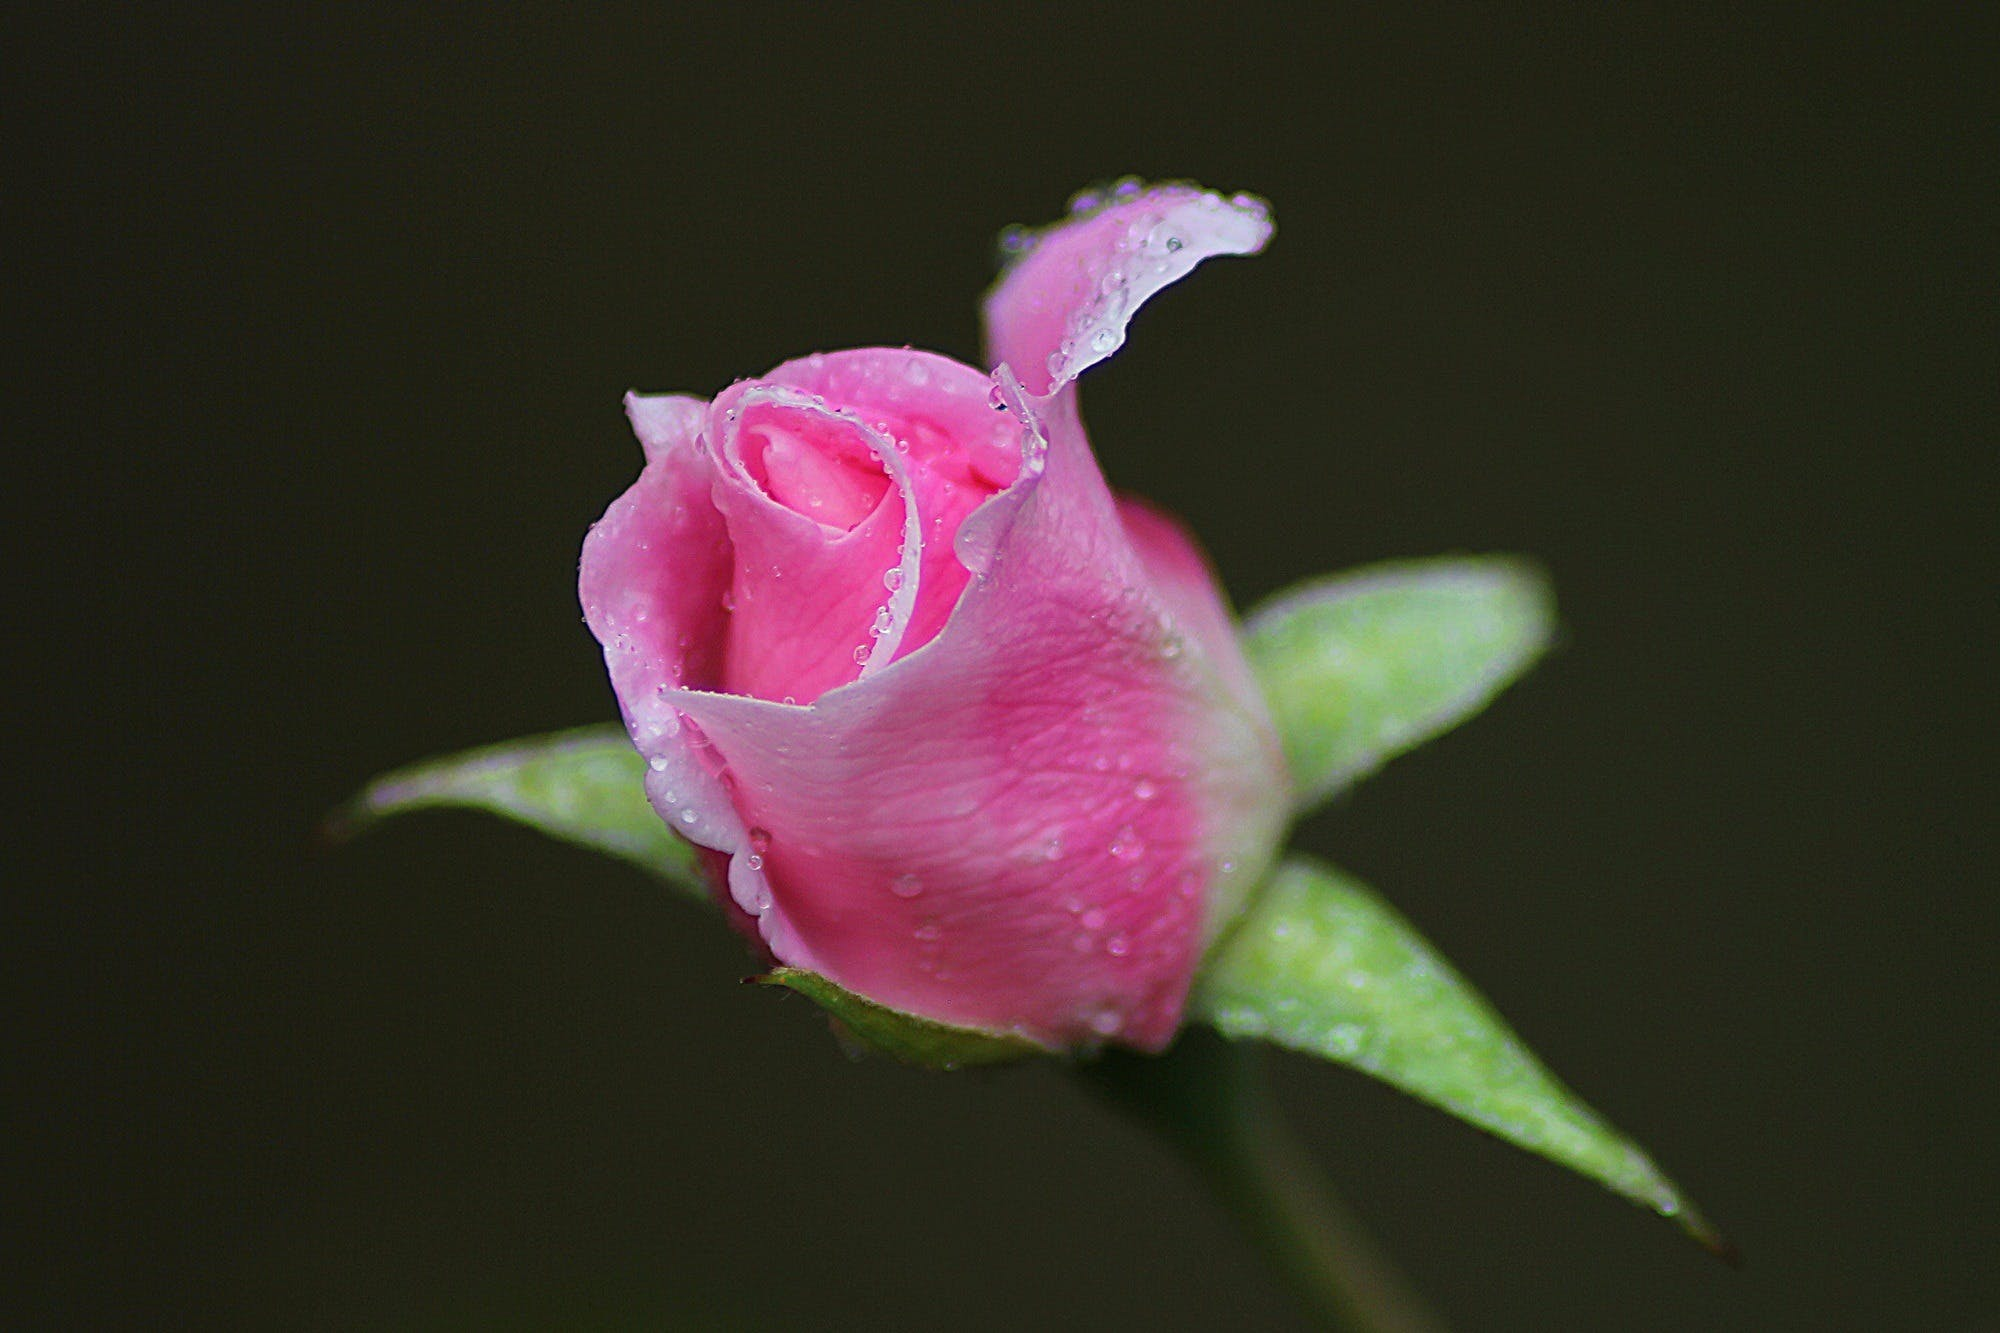 Pink Rose in Shallow Photography